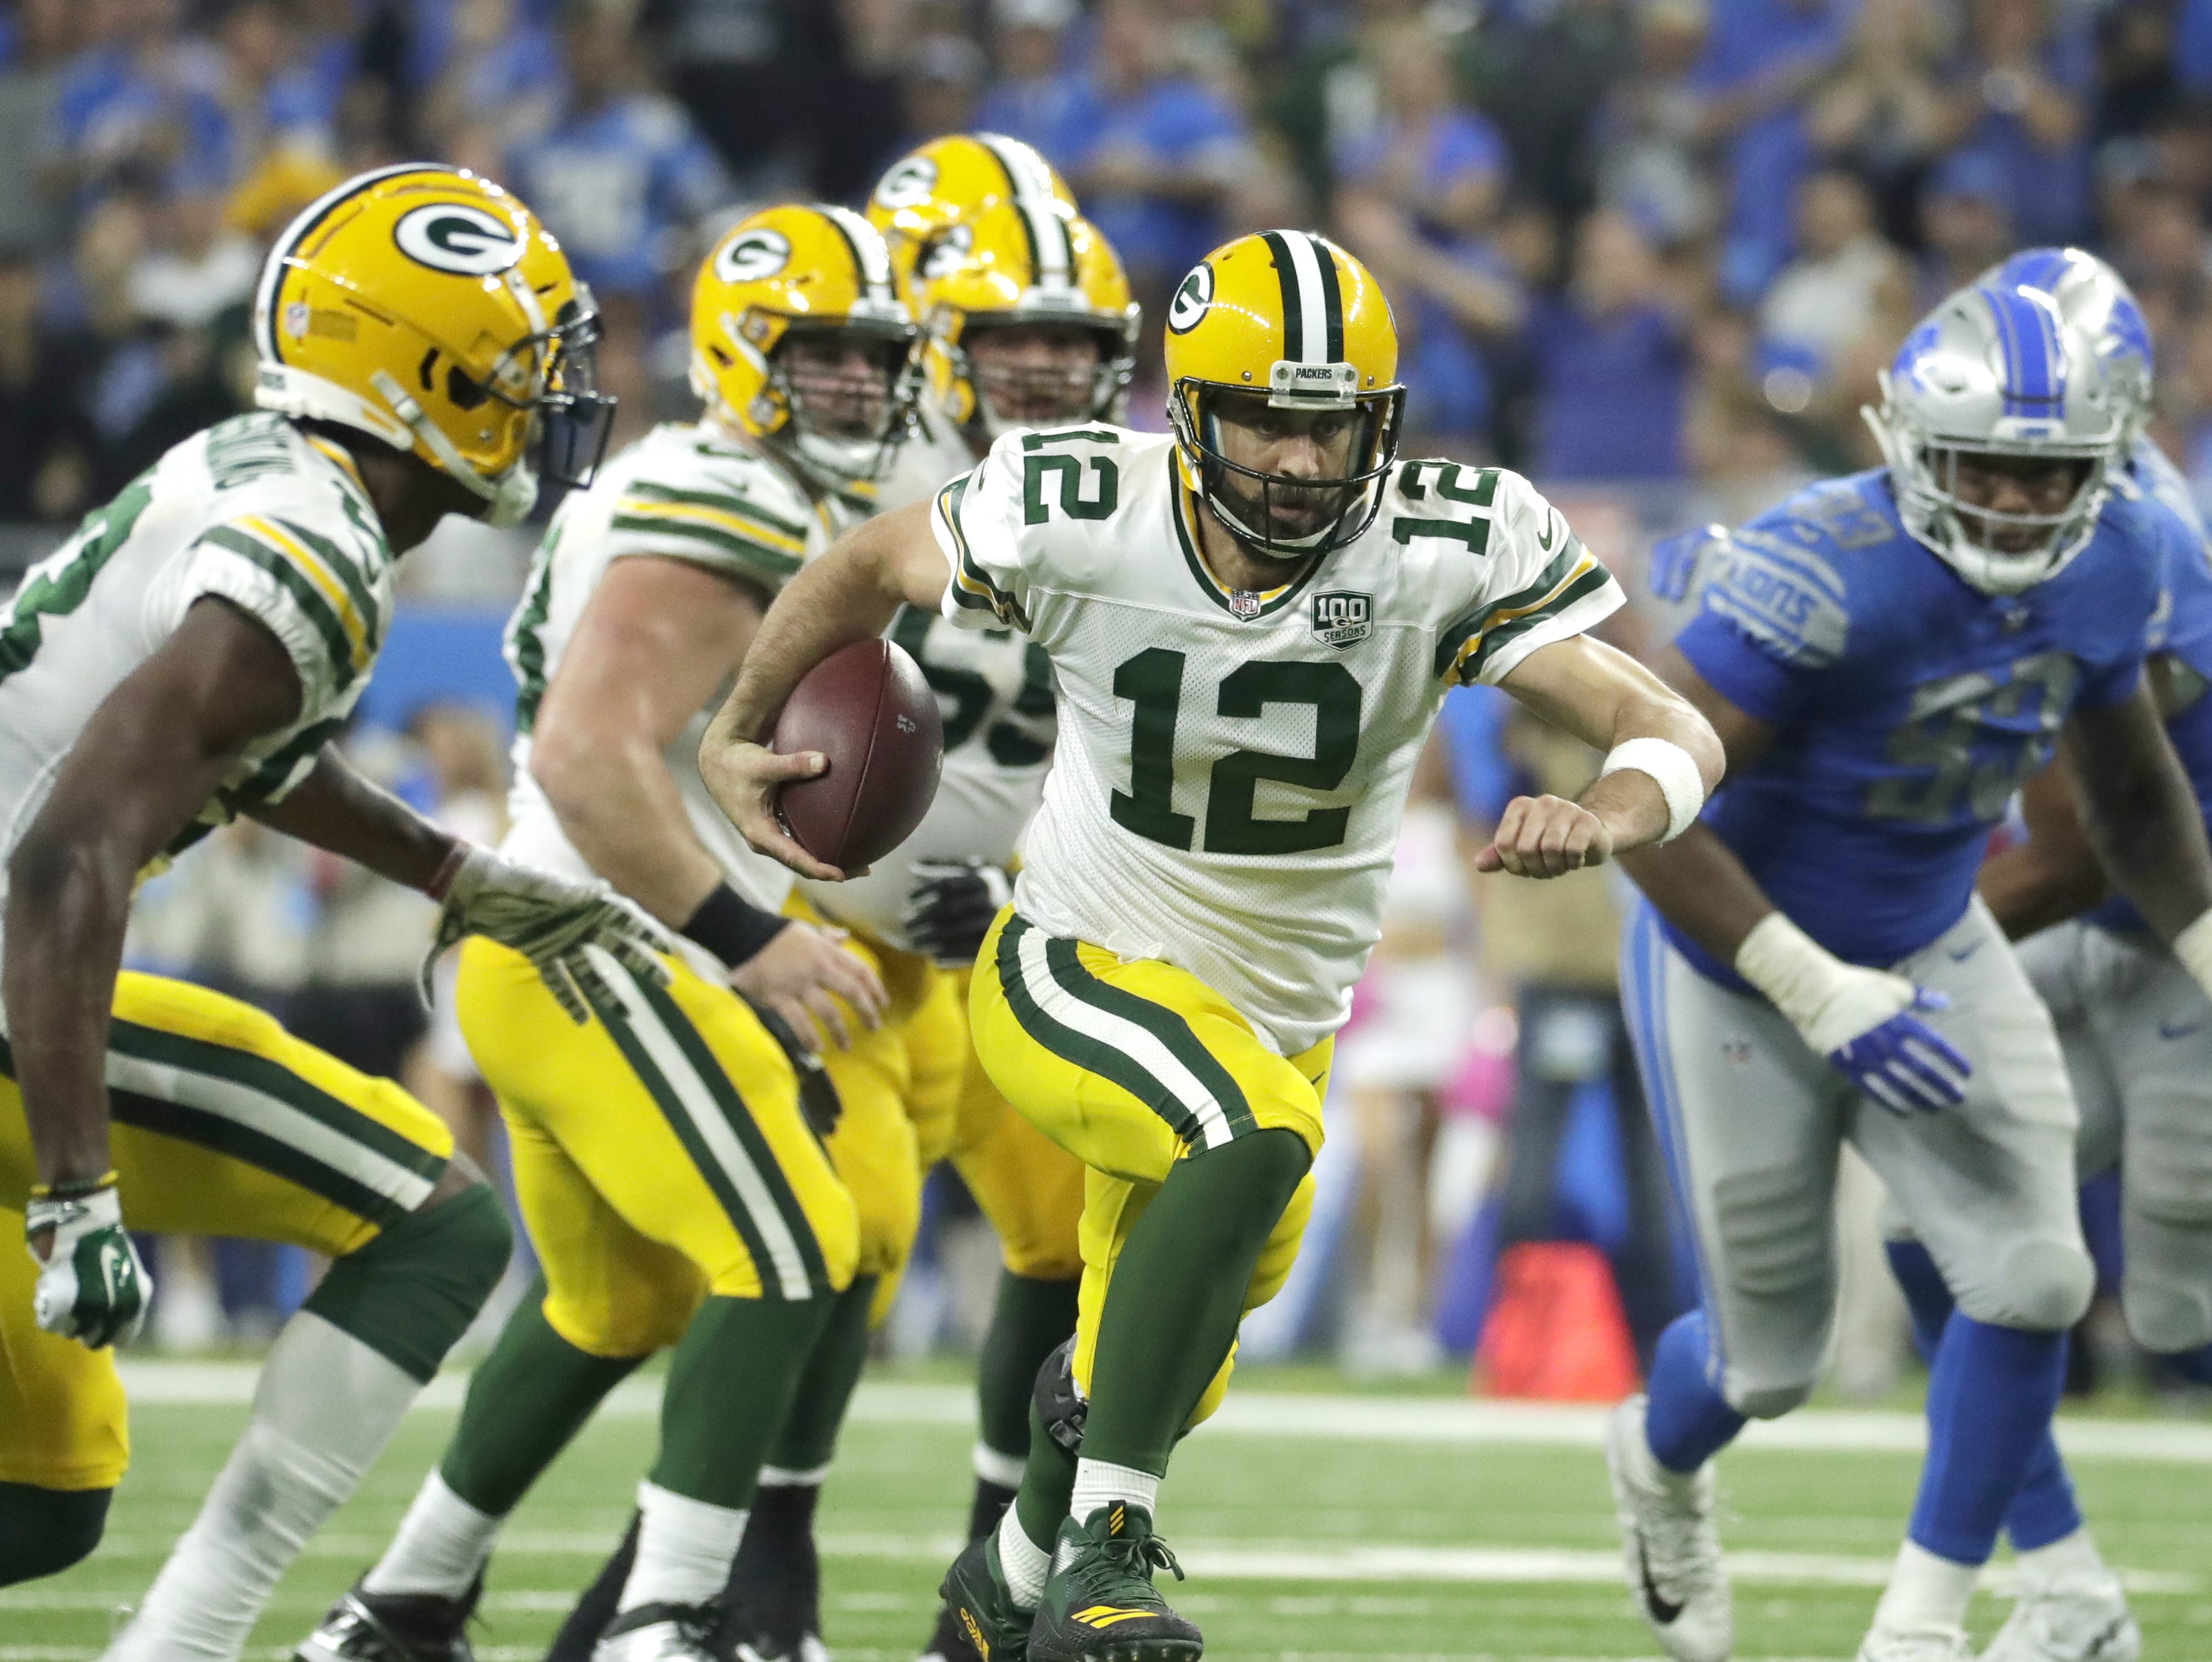 Green Bay Packers quarterback Aaron Rodgers (12) scrambles on 4th and 4 for a first down in the second half during the Green Bay Packers 31-23 loss to the Detroit Lions at Ford Field, Detroit, Sunday, October 7, 2018.